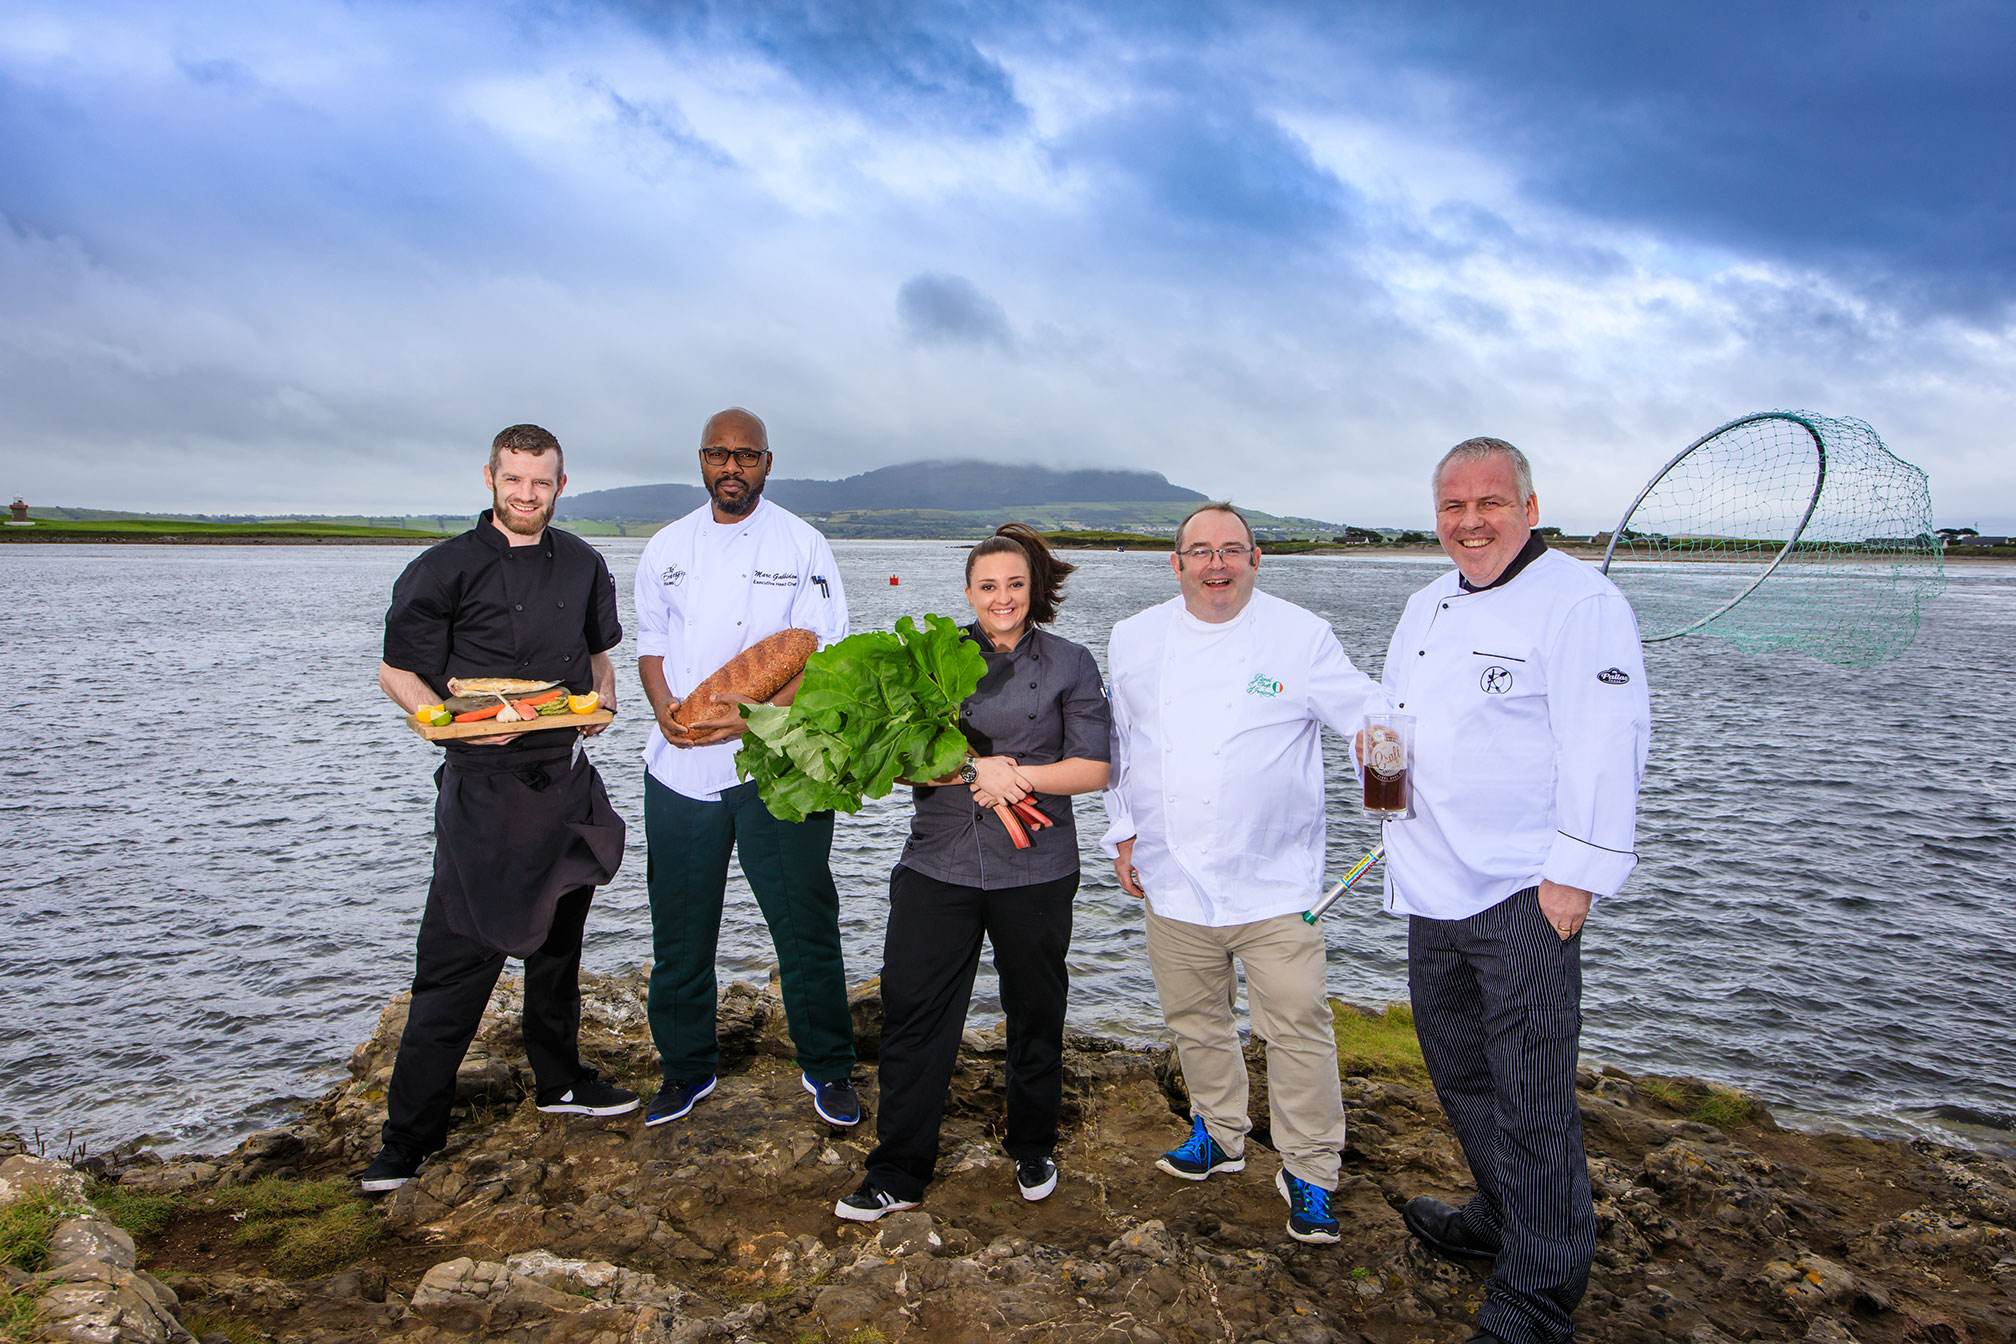 Gala Harvest Feast, A Celebration of Sligo Food Trail